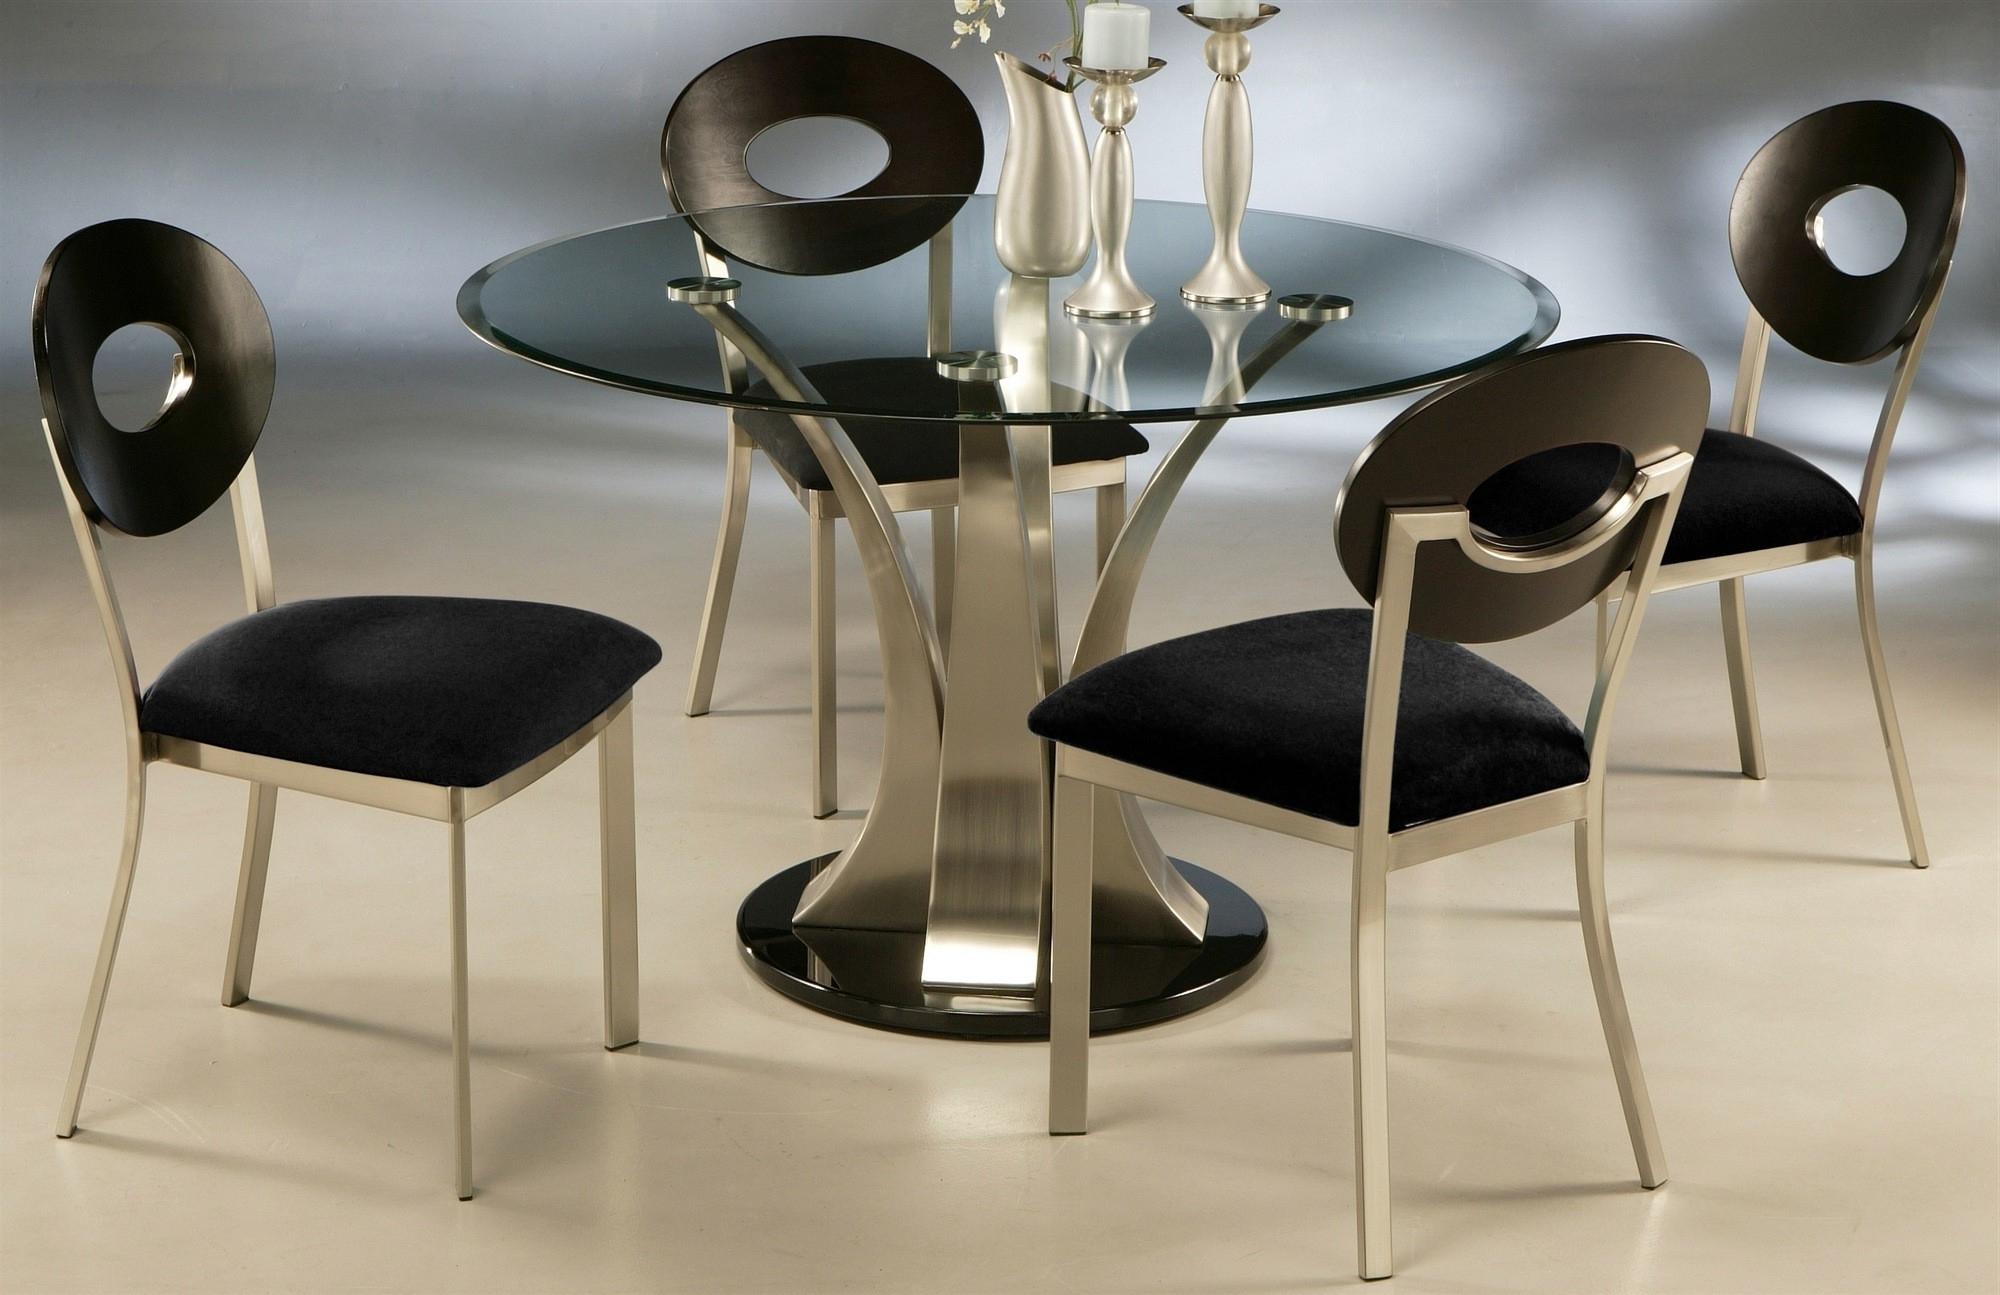 Most Recently Released Round Black Glass Dining Tables And Chairs Inside Round Black Glass Dining Table With Round Stainless Steel Base Added (View 16 of 25)